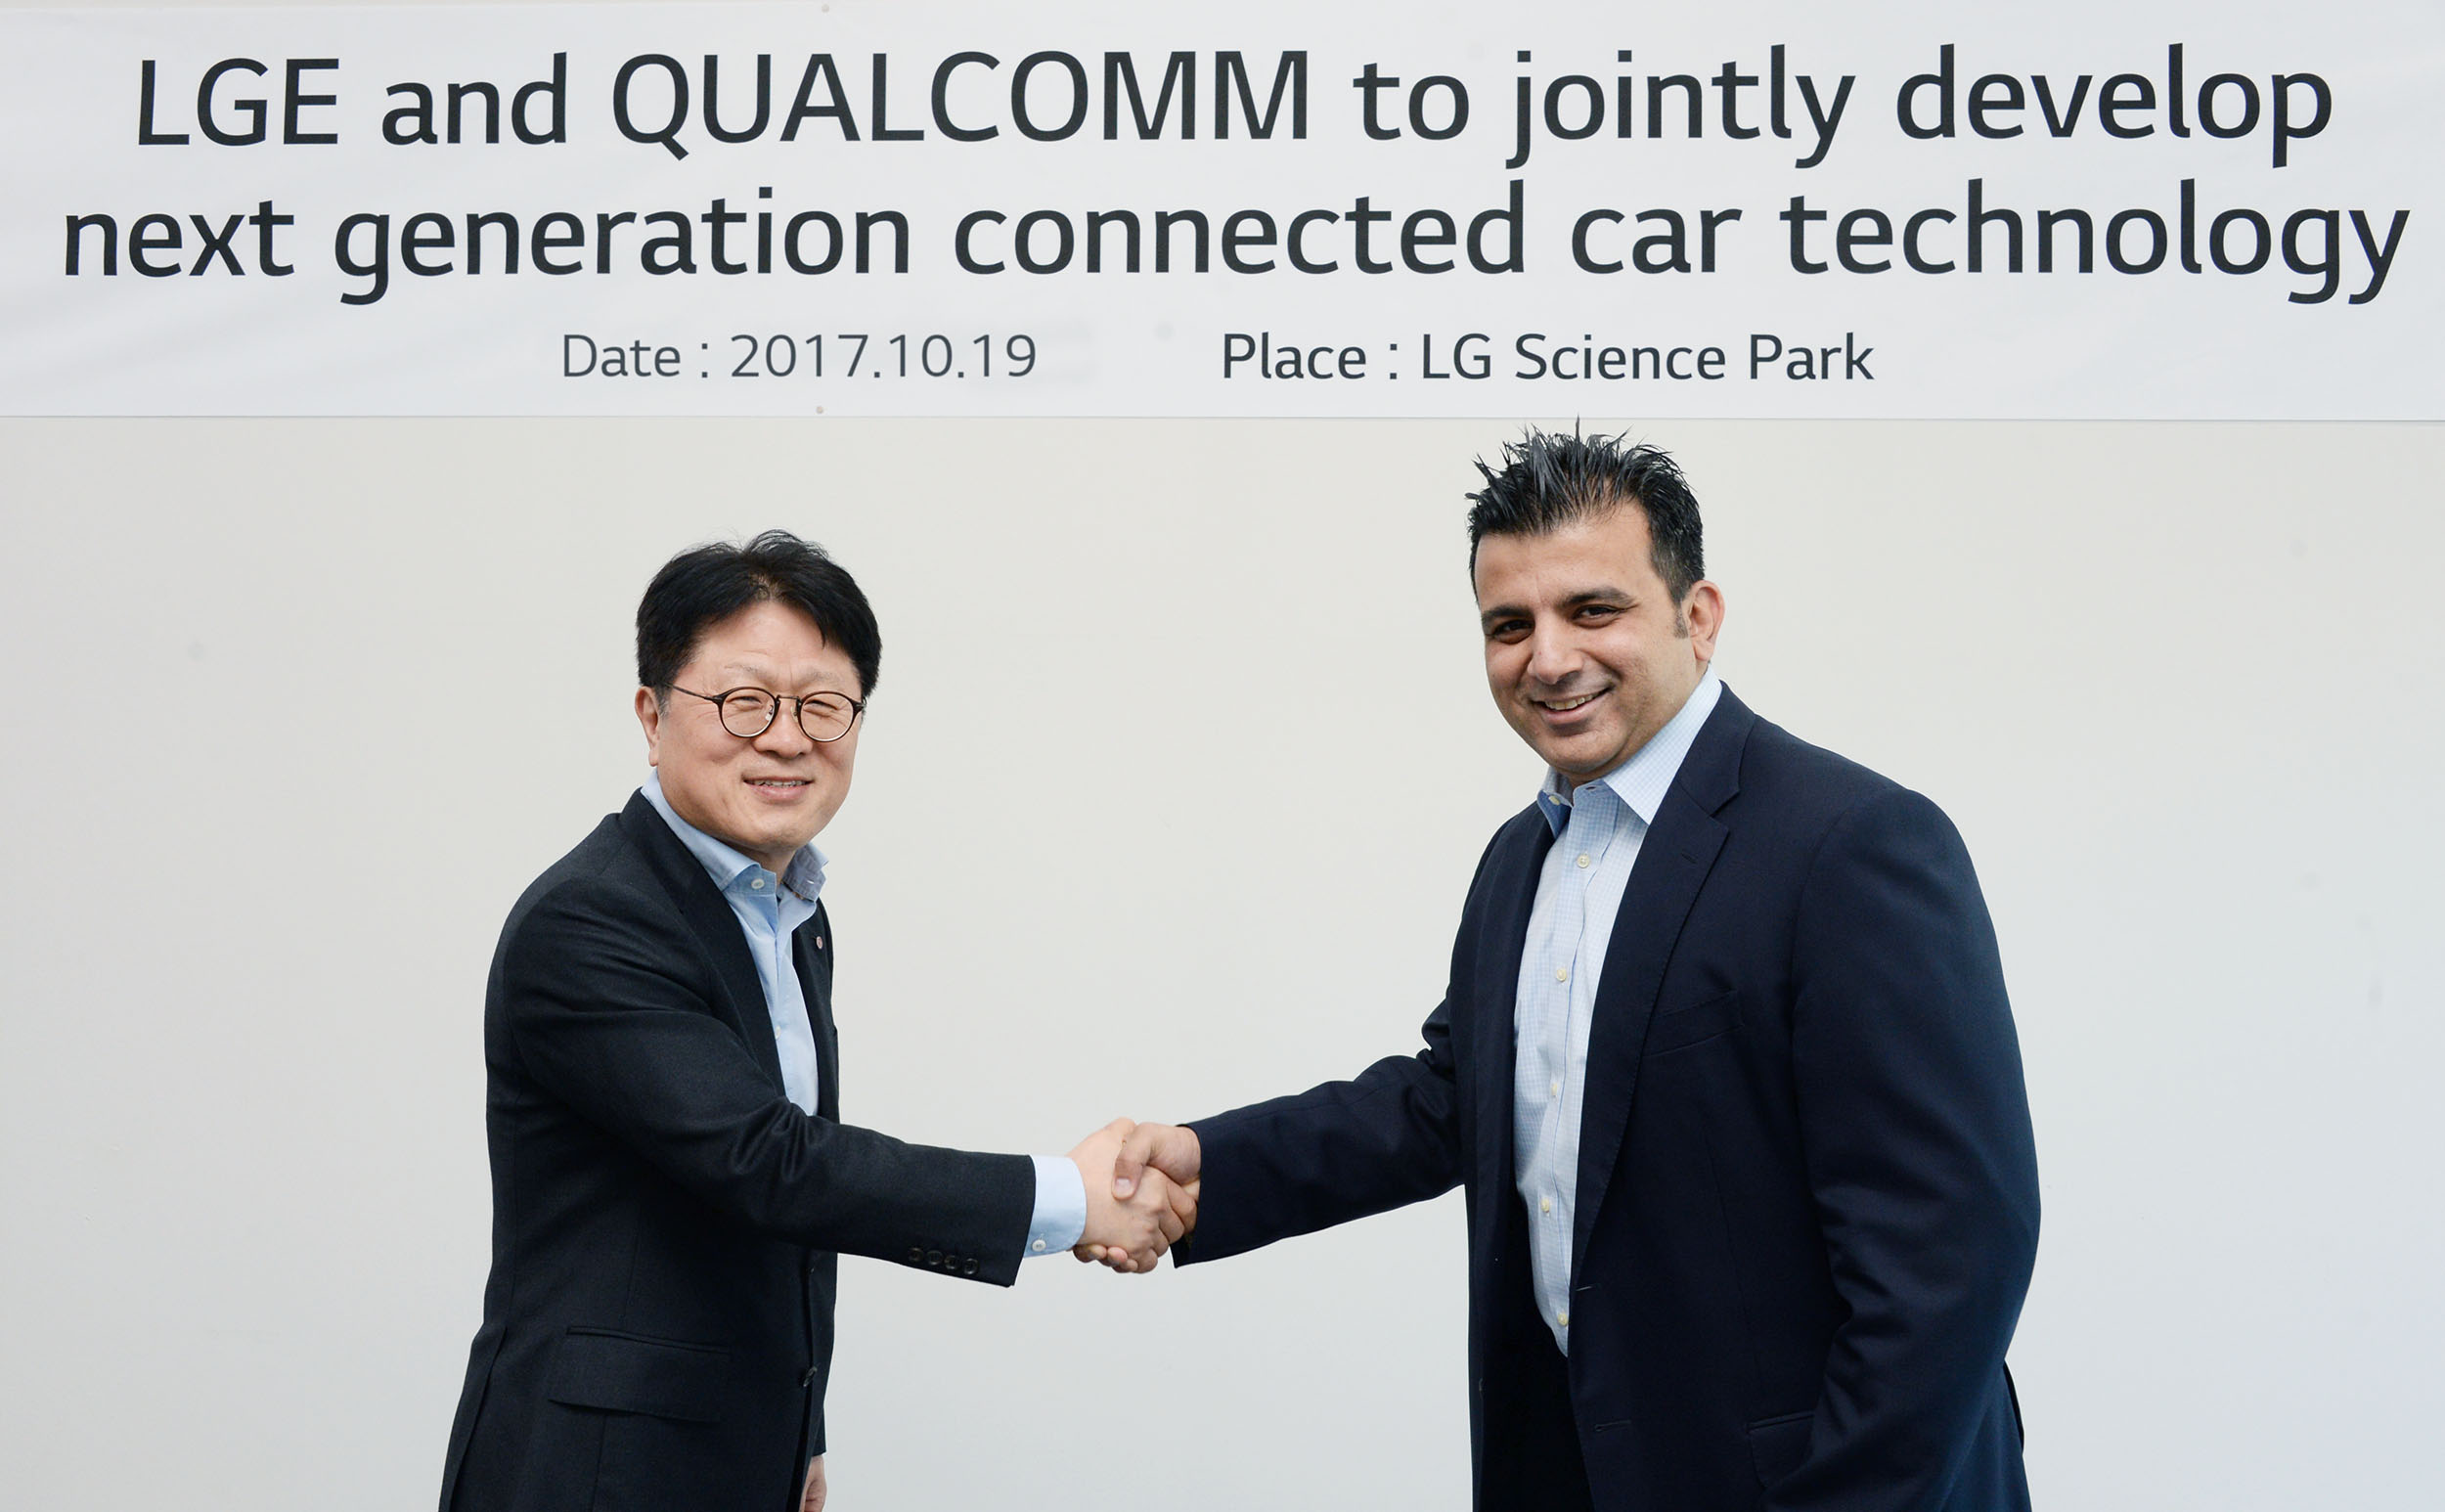 LG and Qualcomm leaders shaking hands